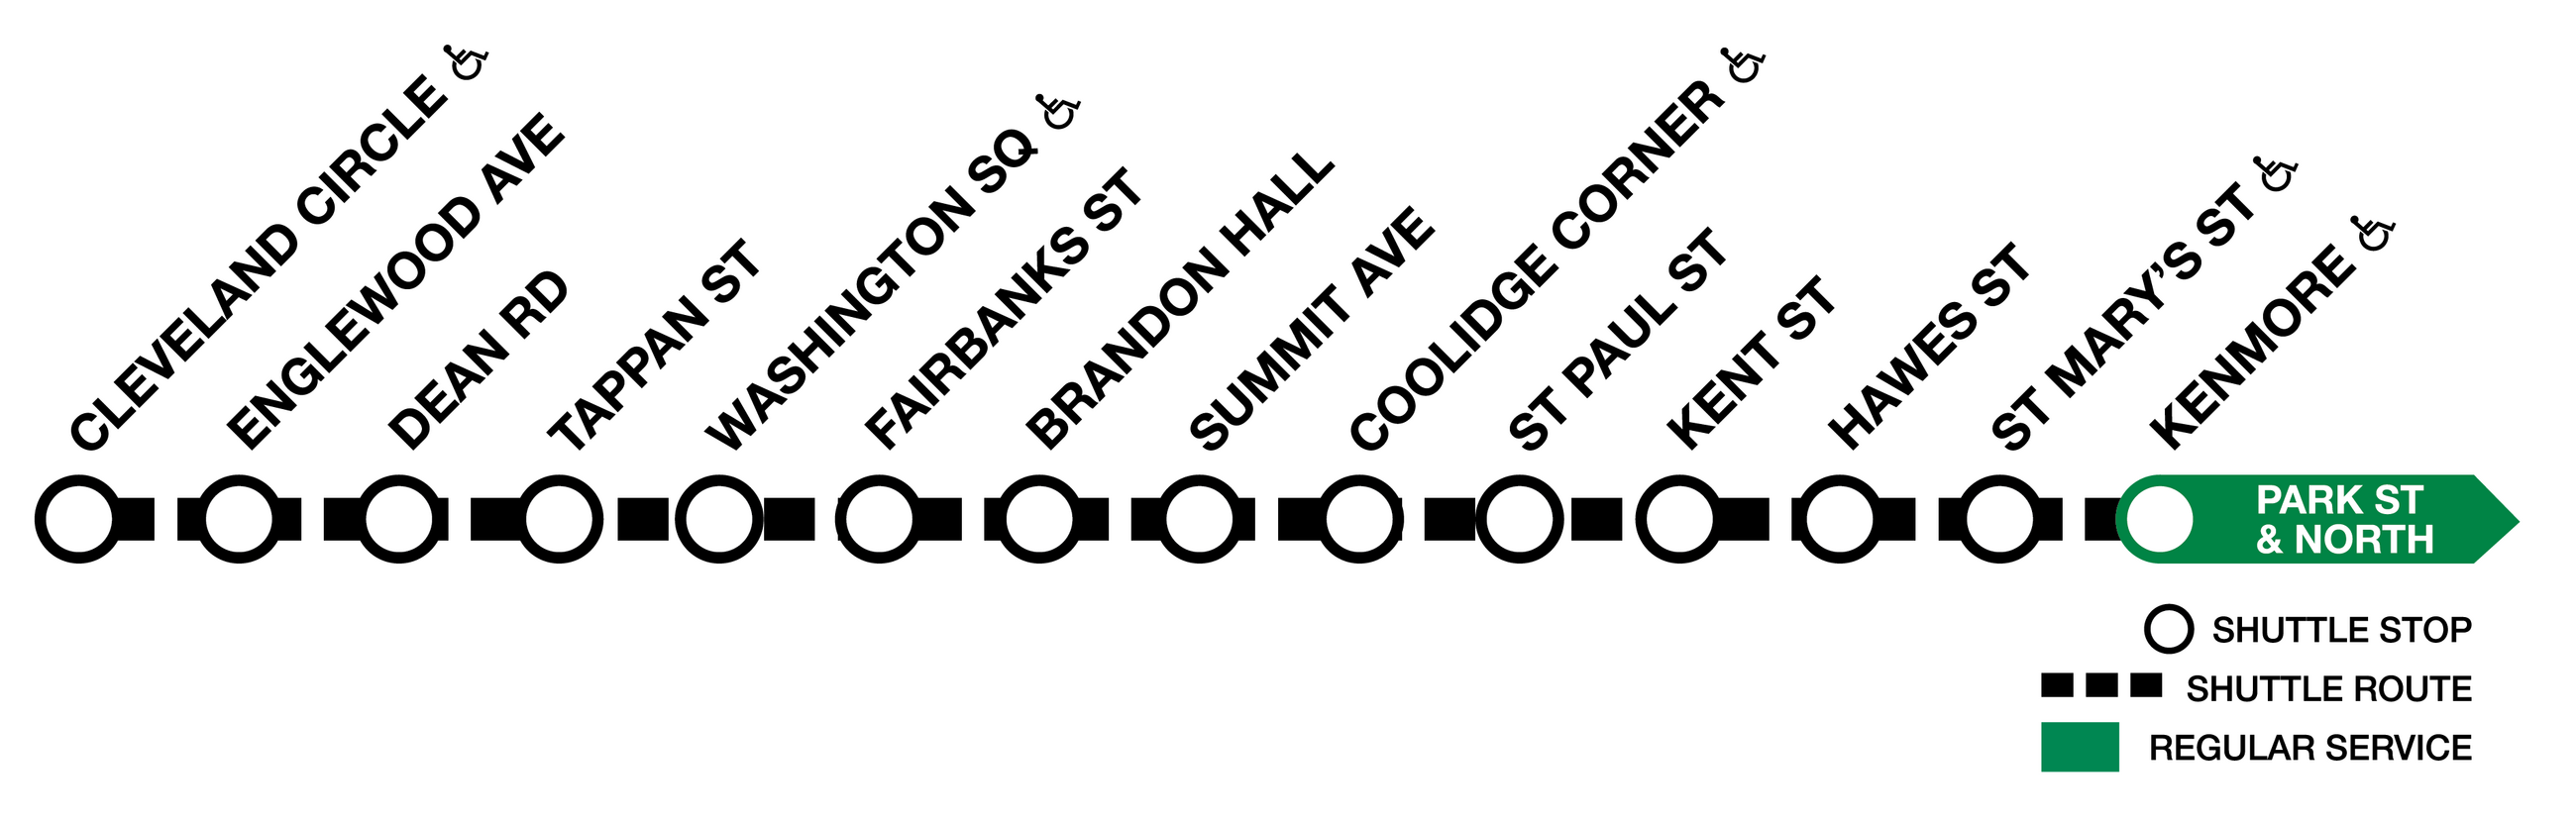 Line graphic of the Green Line C branch, showing shuttles between Cleveland Circle and Kenmore